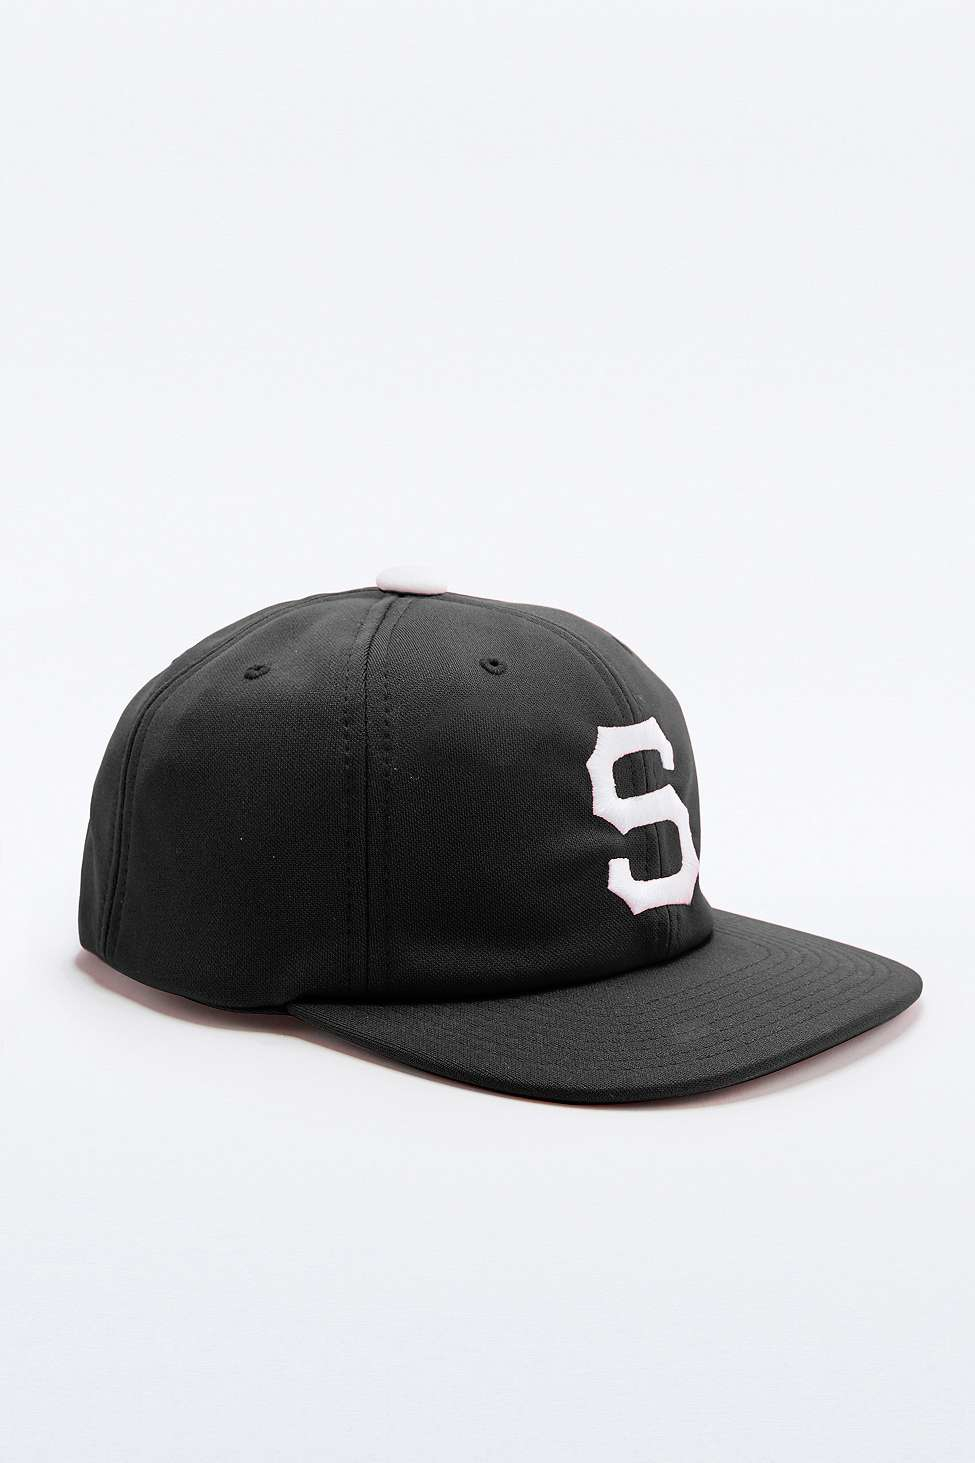 Stussy Short Brim Old S Black Snapback Cap in Black for Men - Lyst bccab7e65934